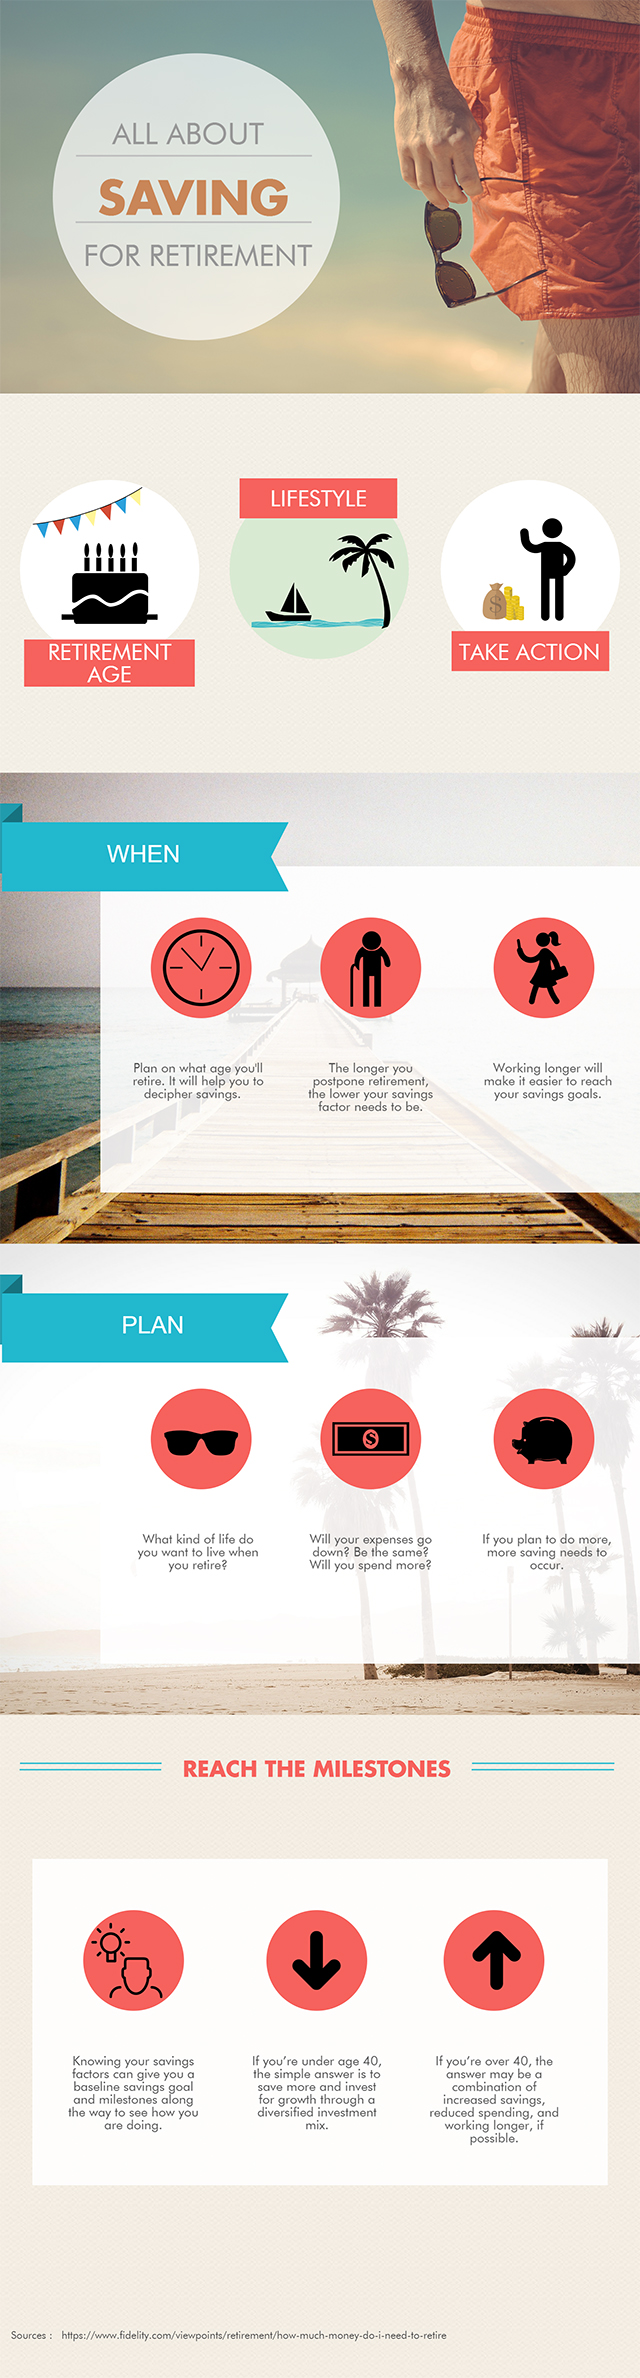 easy ways to save for retirement - infographic